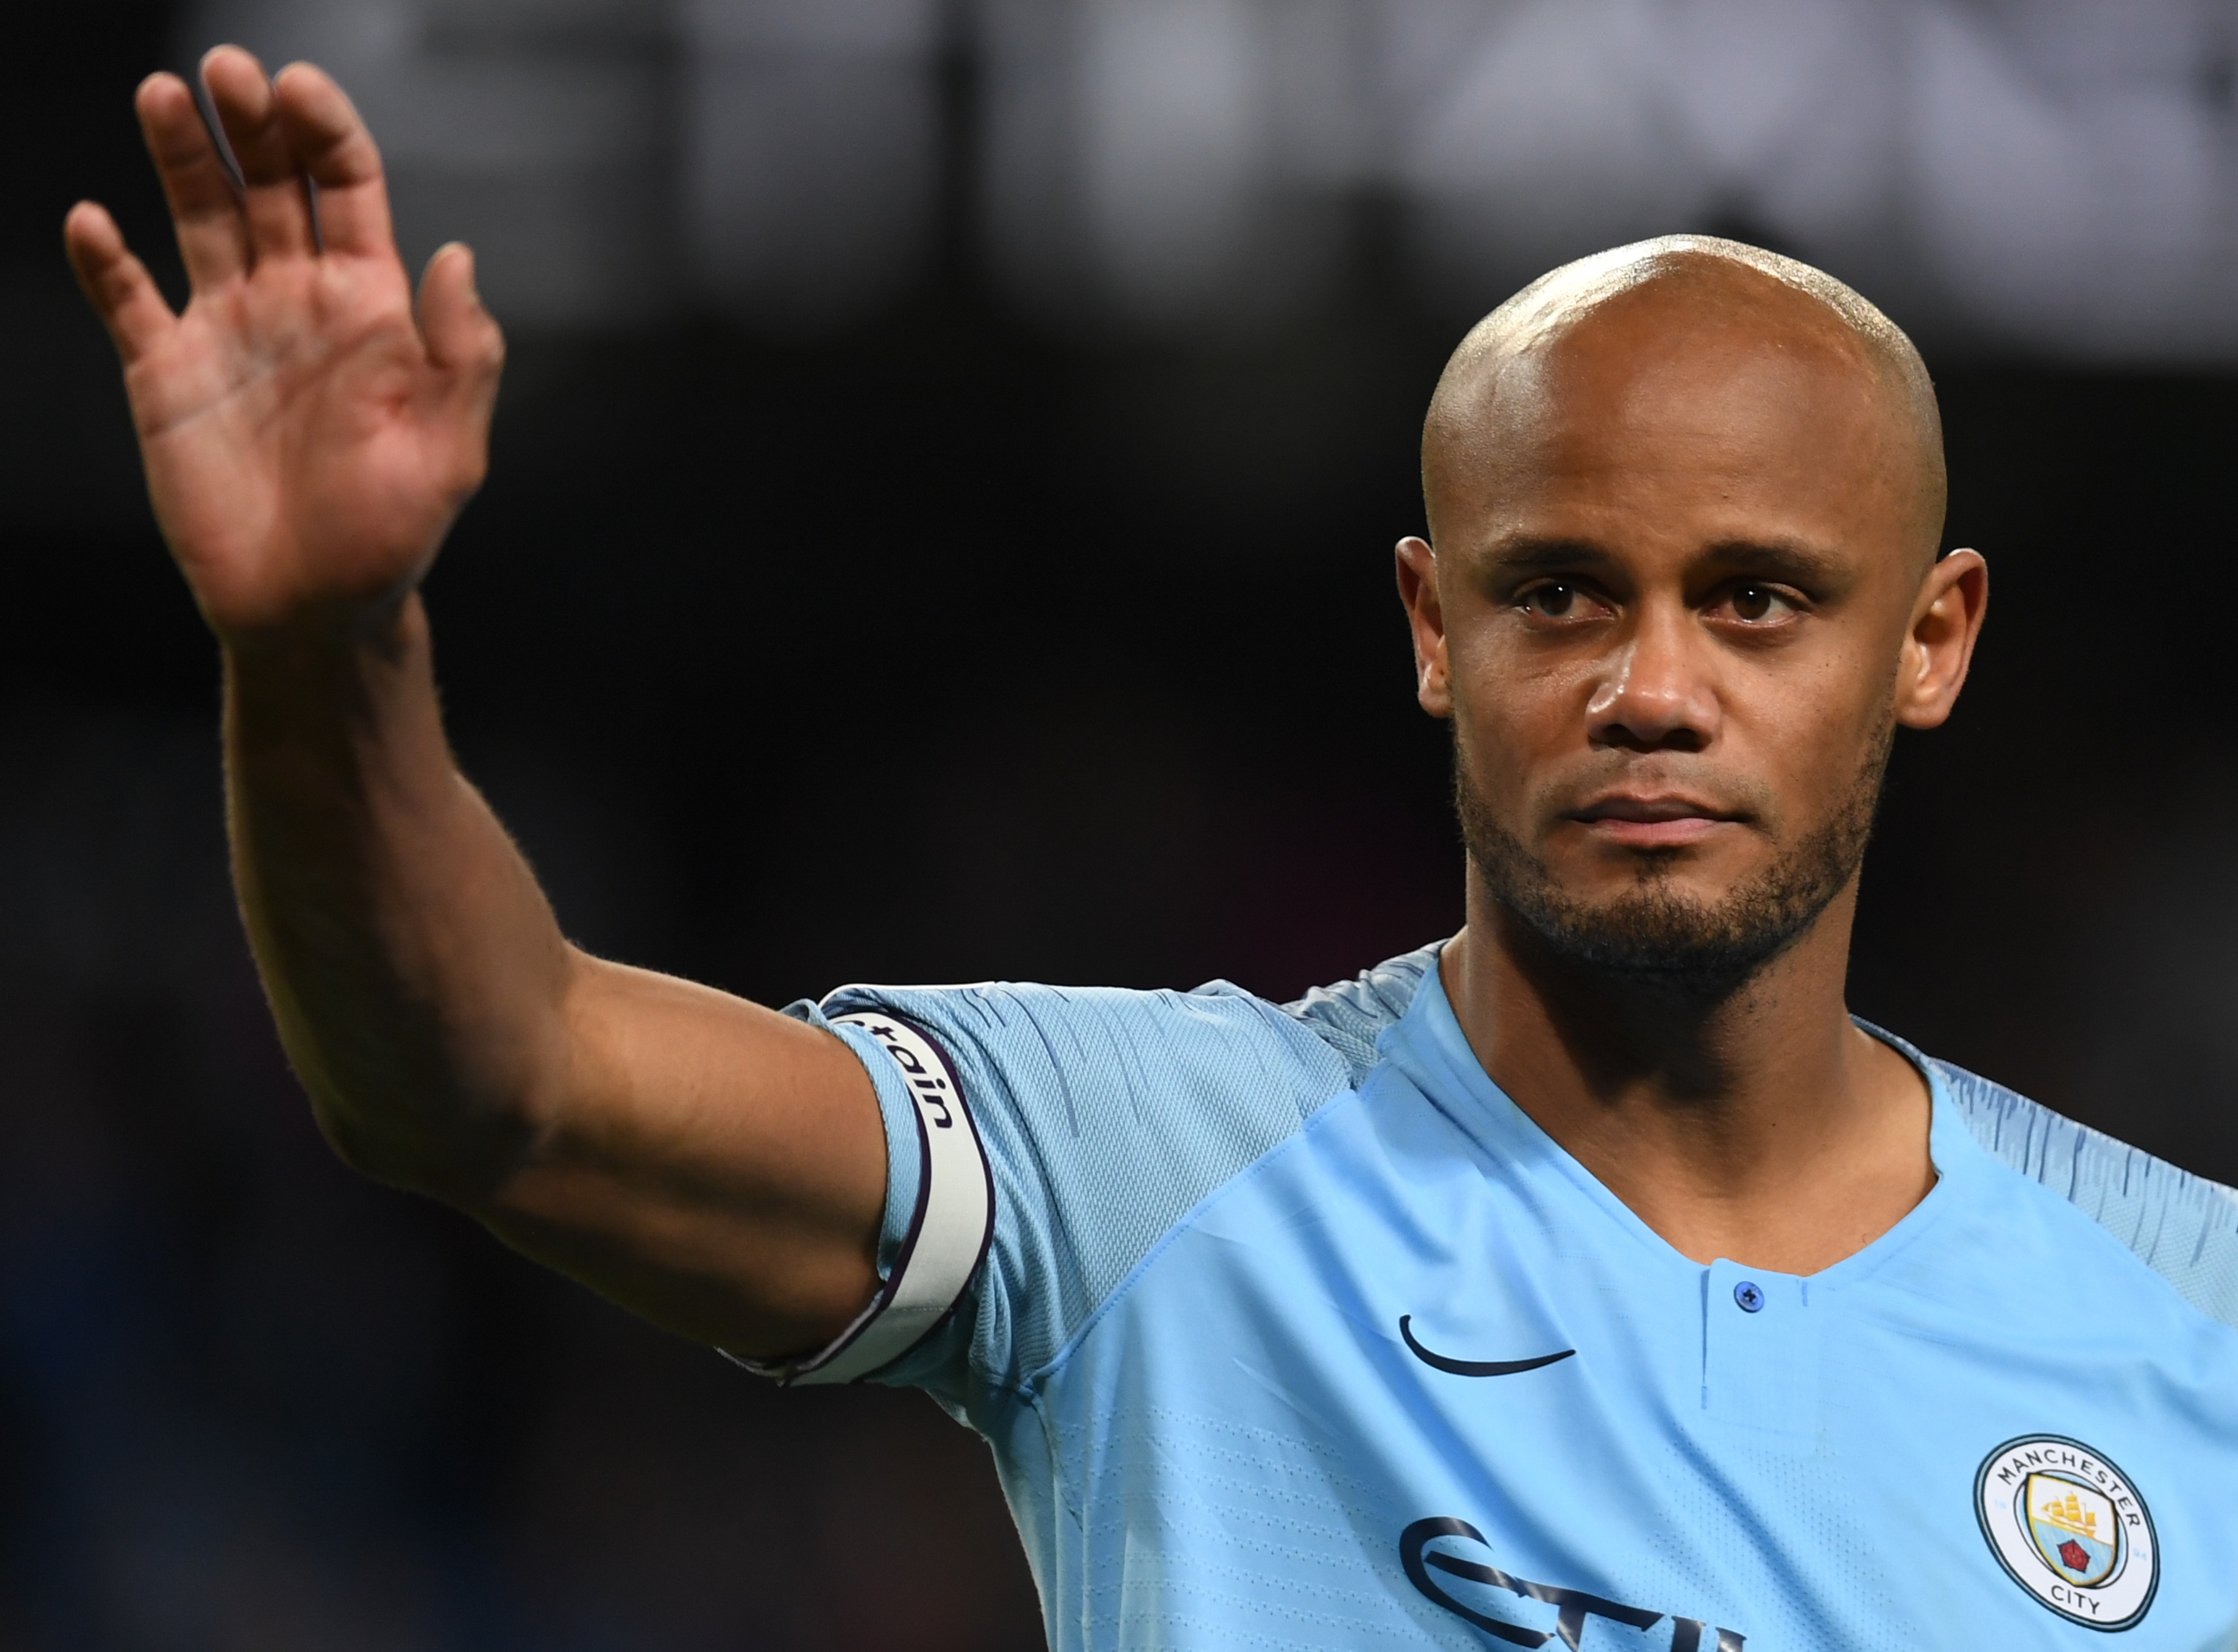 Manchester City's Belgian defender Vincent Kompany announced that he is to leave Manchester City after 11 trophy-laden years.